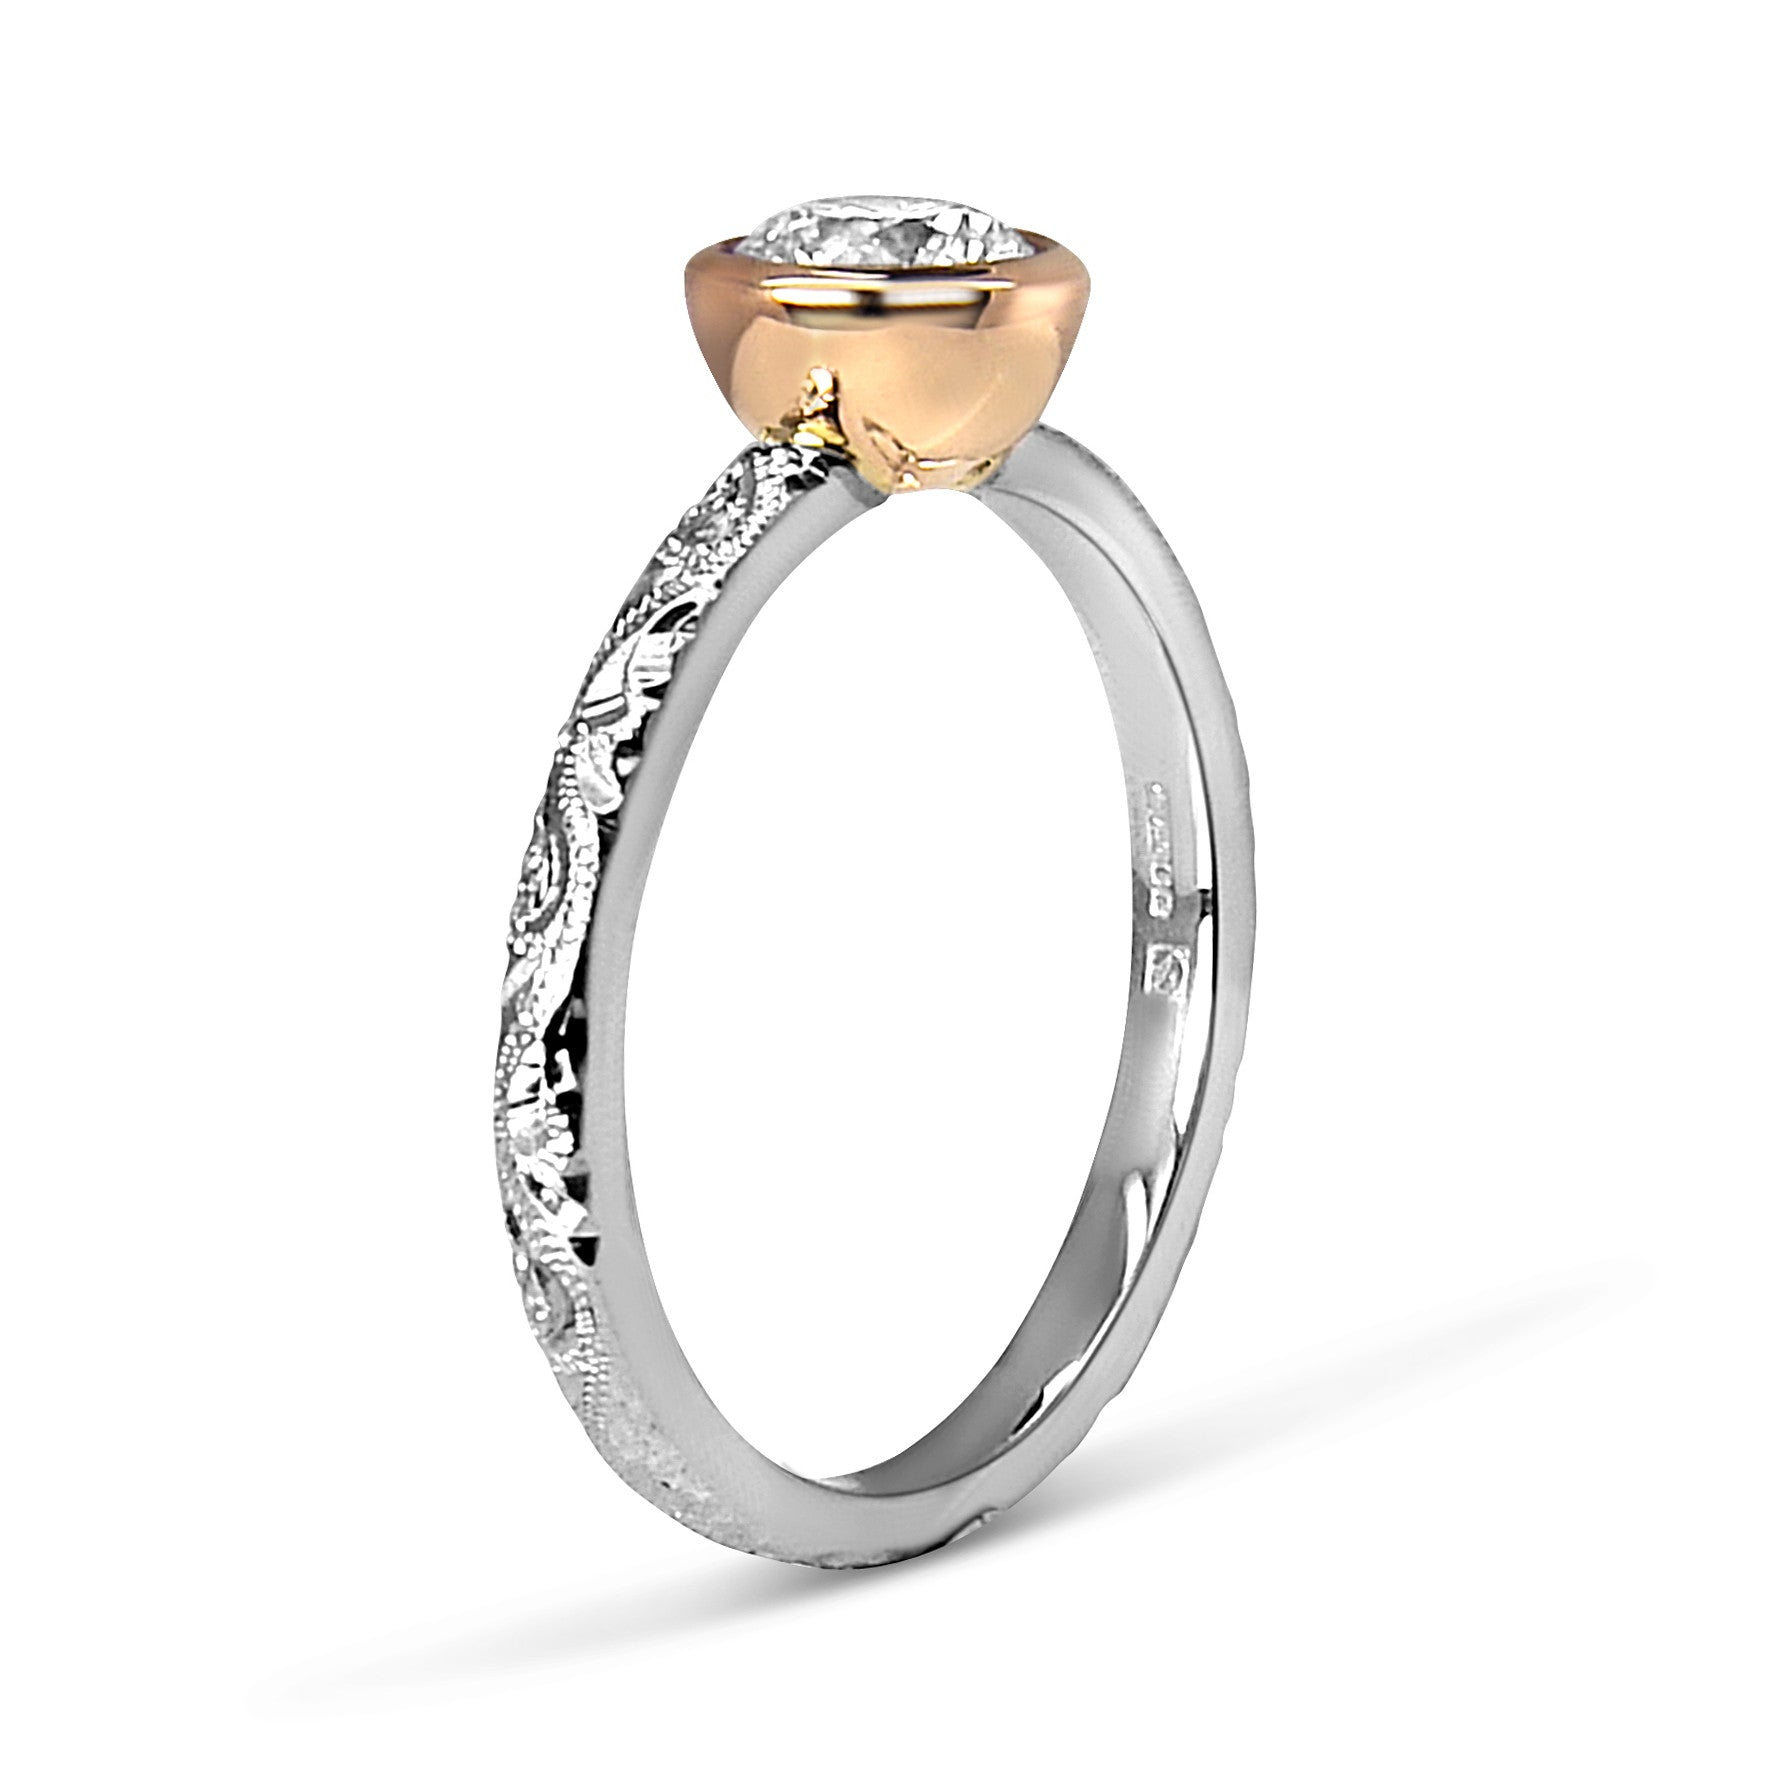 38941da569f9ac Gemma   Max Engagement Ring – Arabel Lebrusan